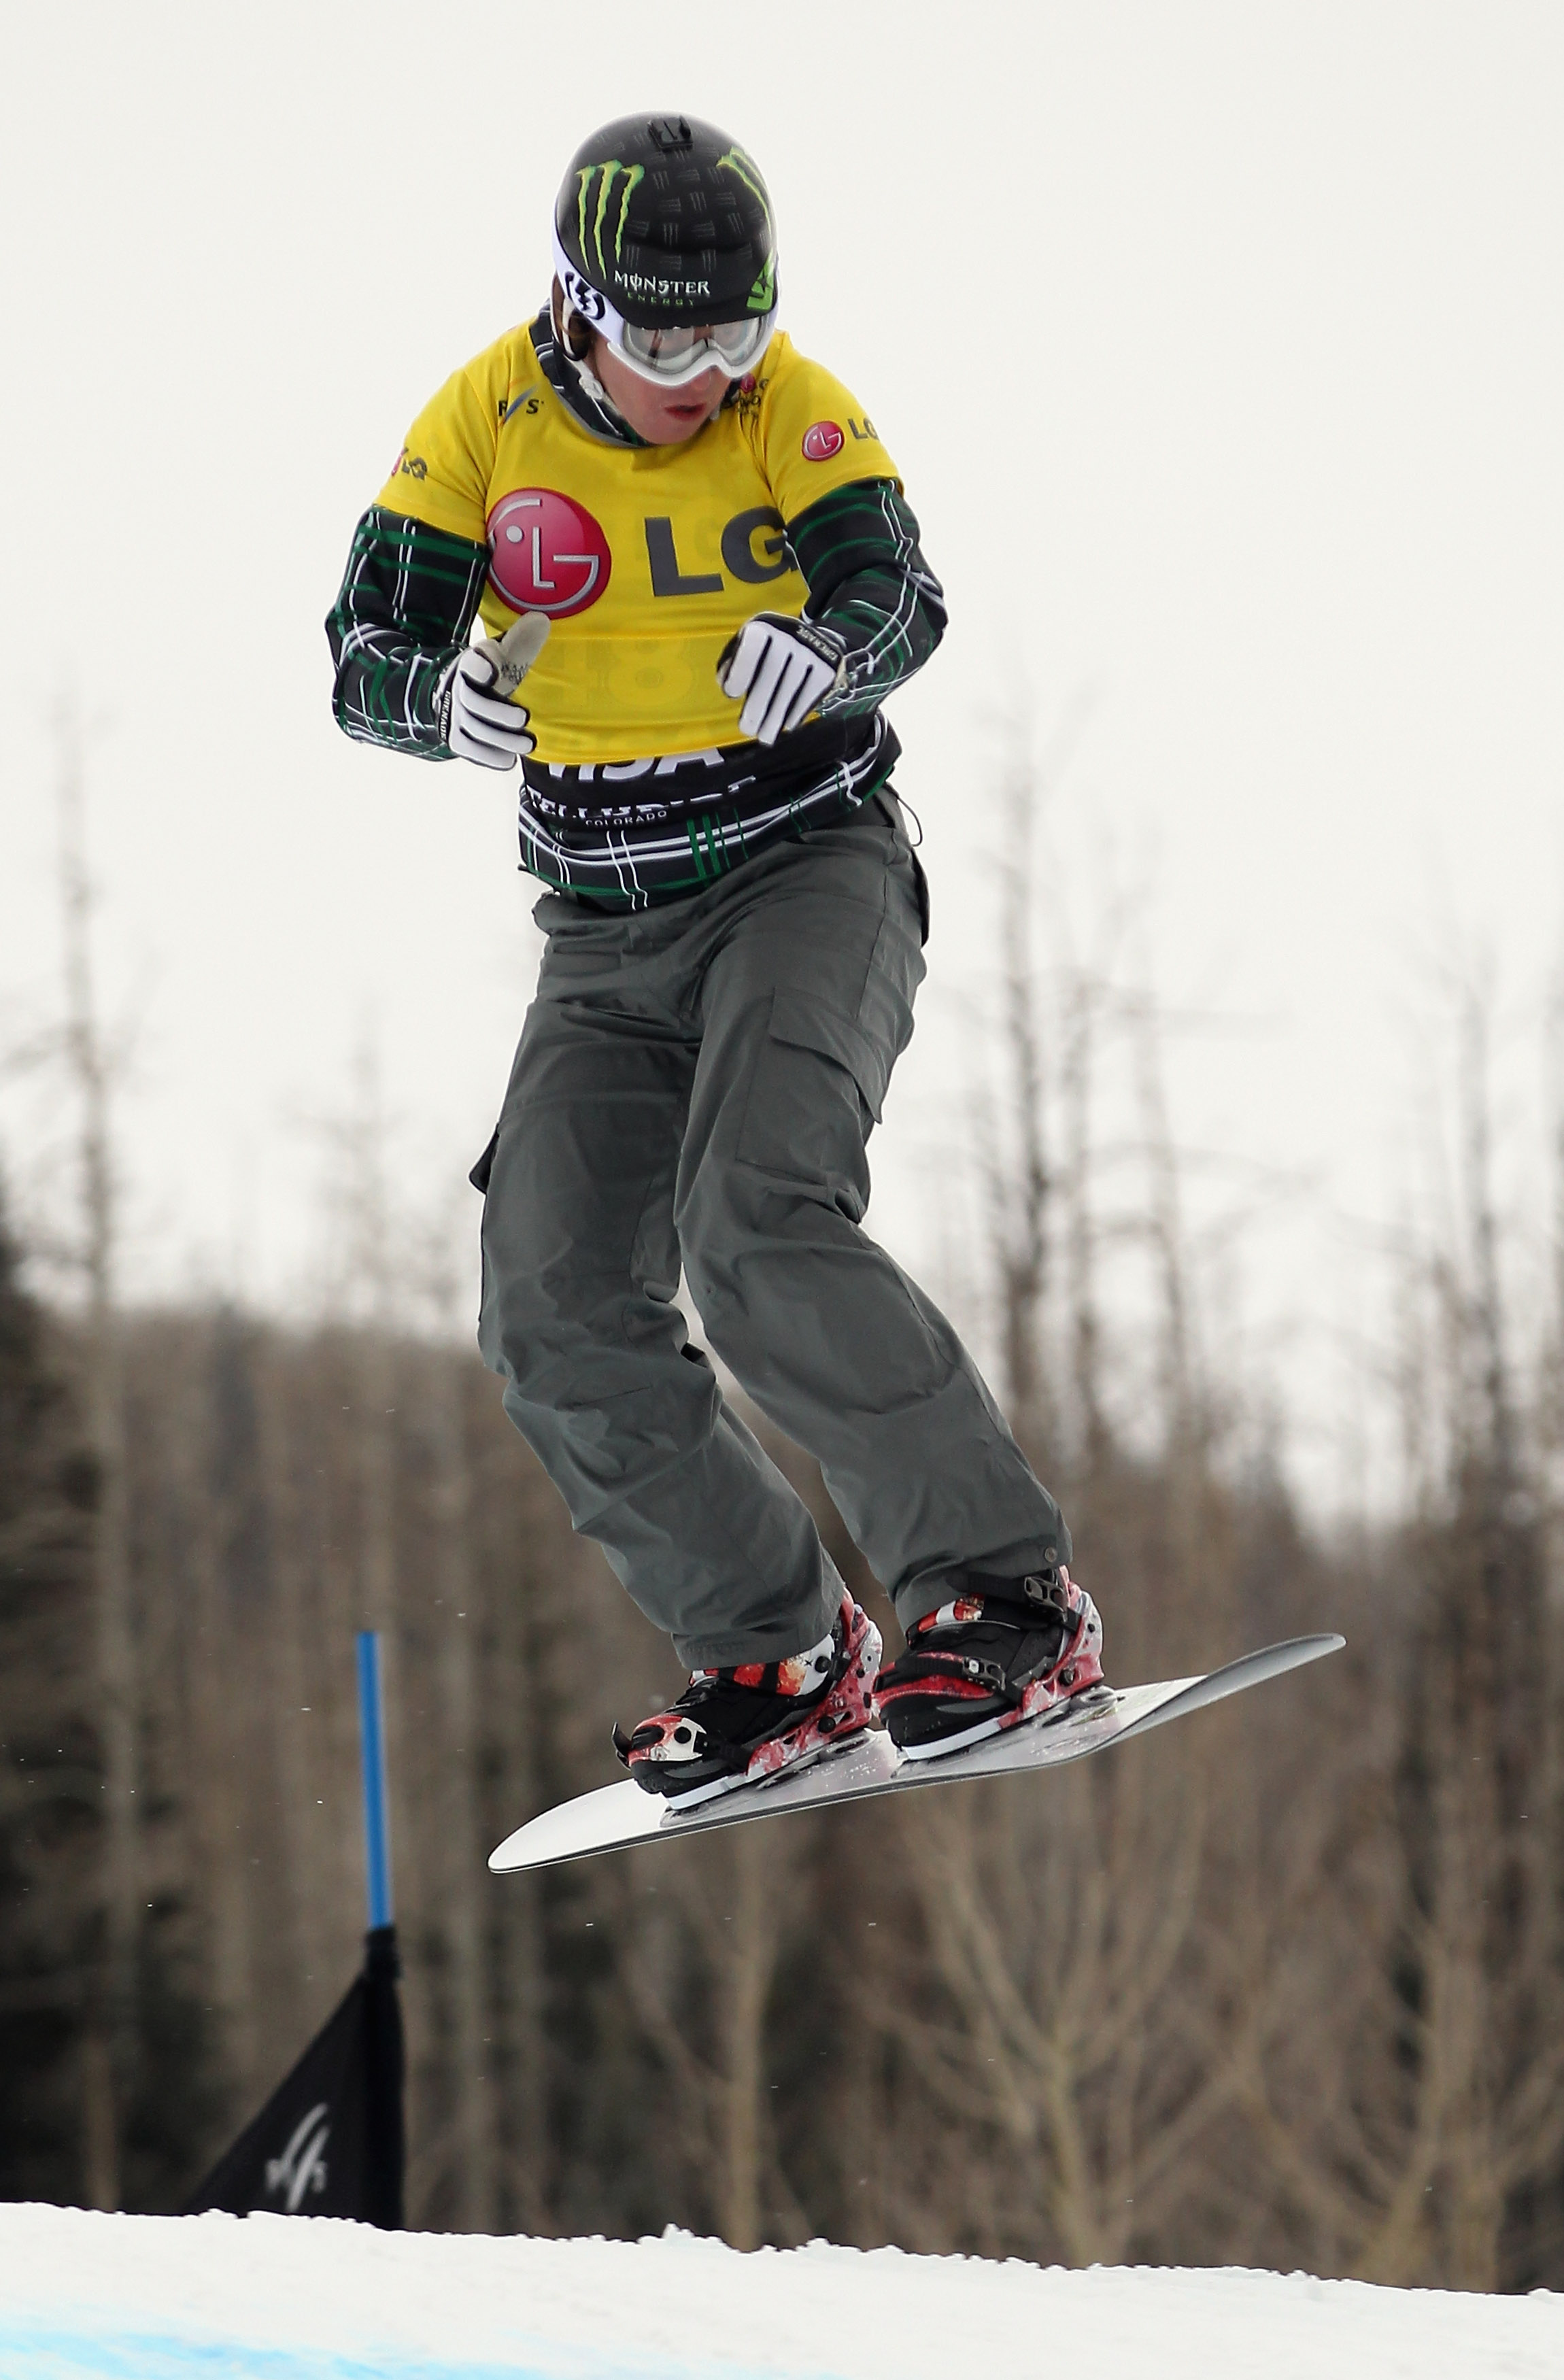 TELLURIDE, CO - DECEMBER 15:  Nate Holland of the USA descends the course as he finished fifth during Snowboard Cross Qualification at the LG Snowboard FIS World Cup on December 15, 2010 in Telluride, Colorado. Holland is currently holding the points lead